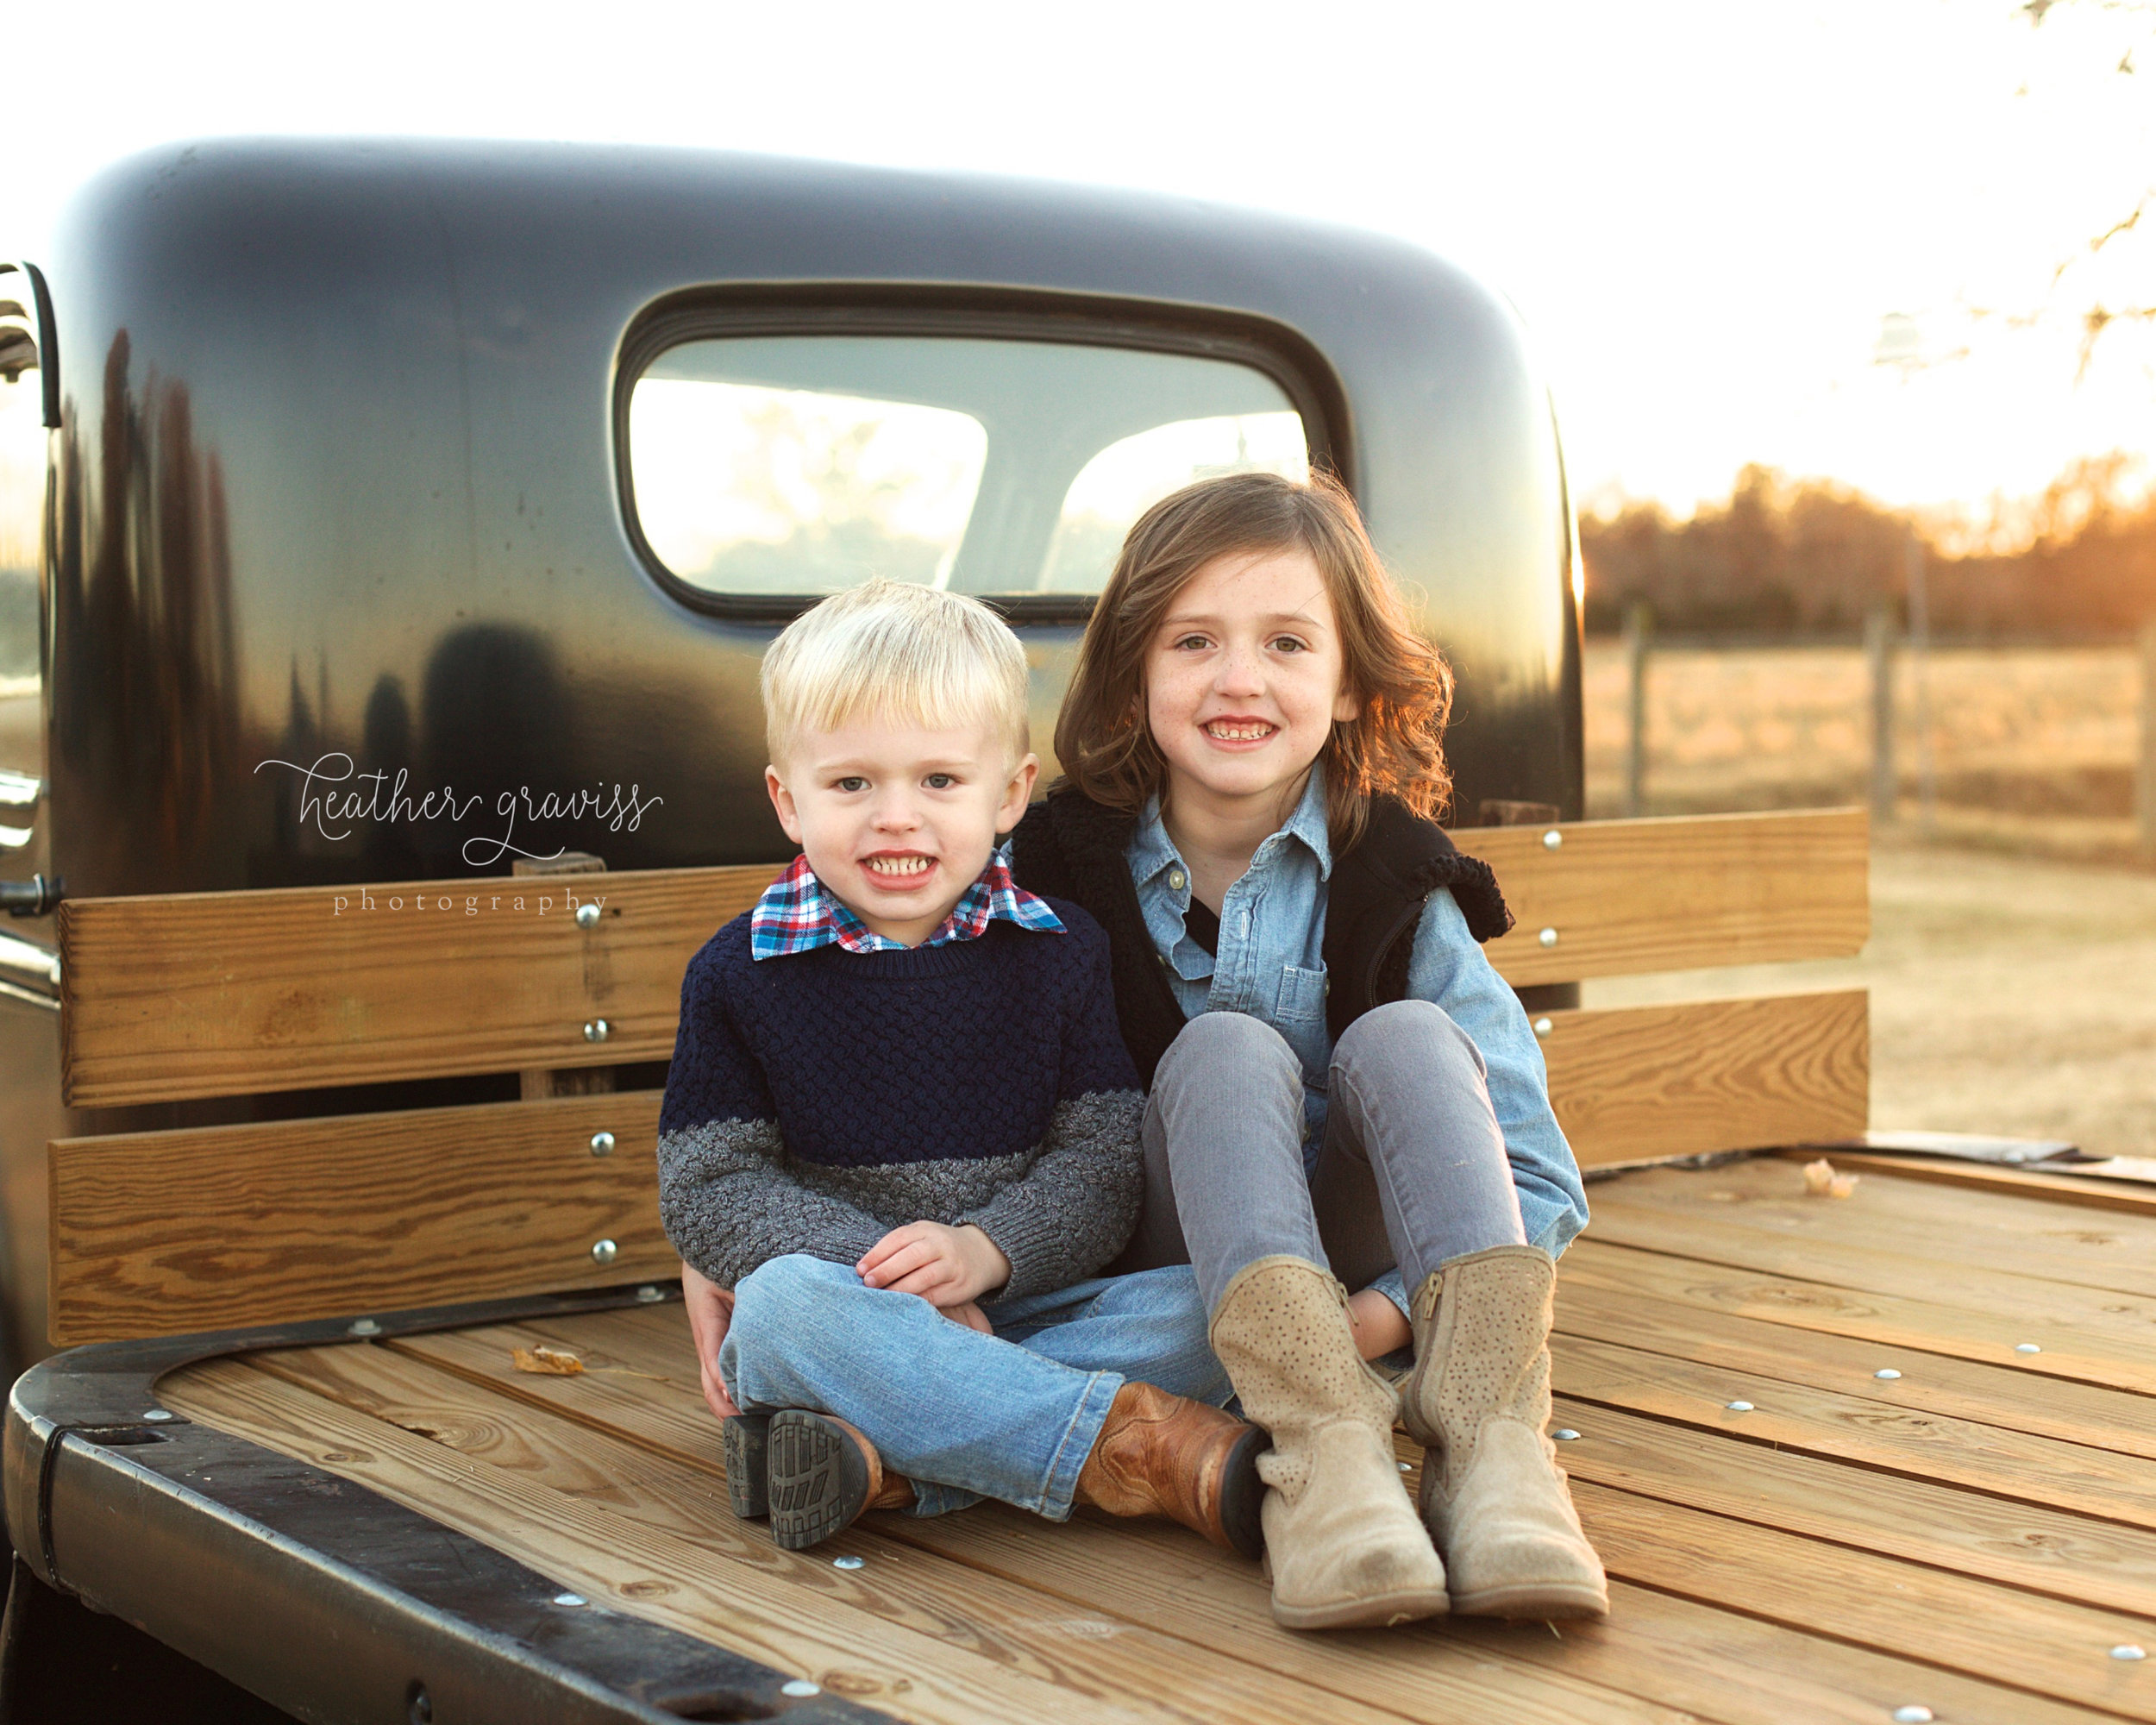 cuties-in-vintage-truck.jpg